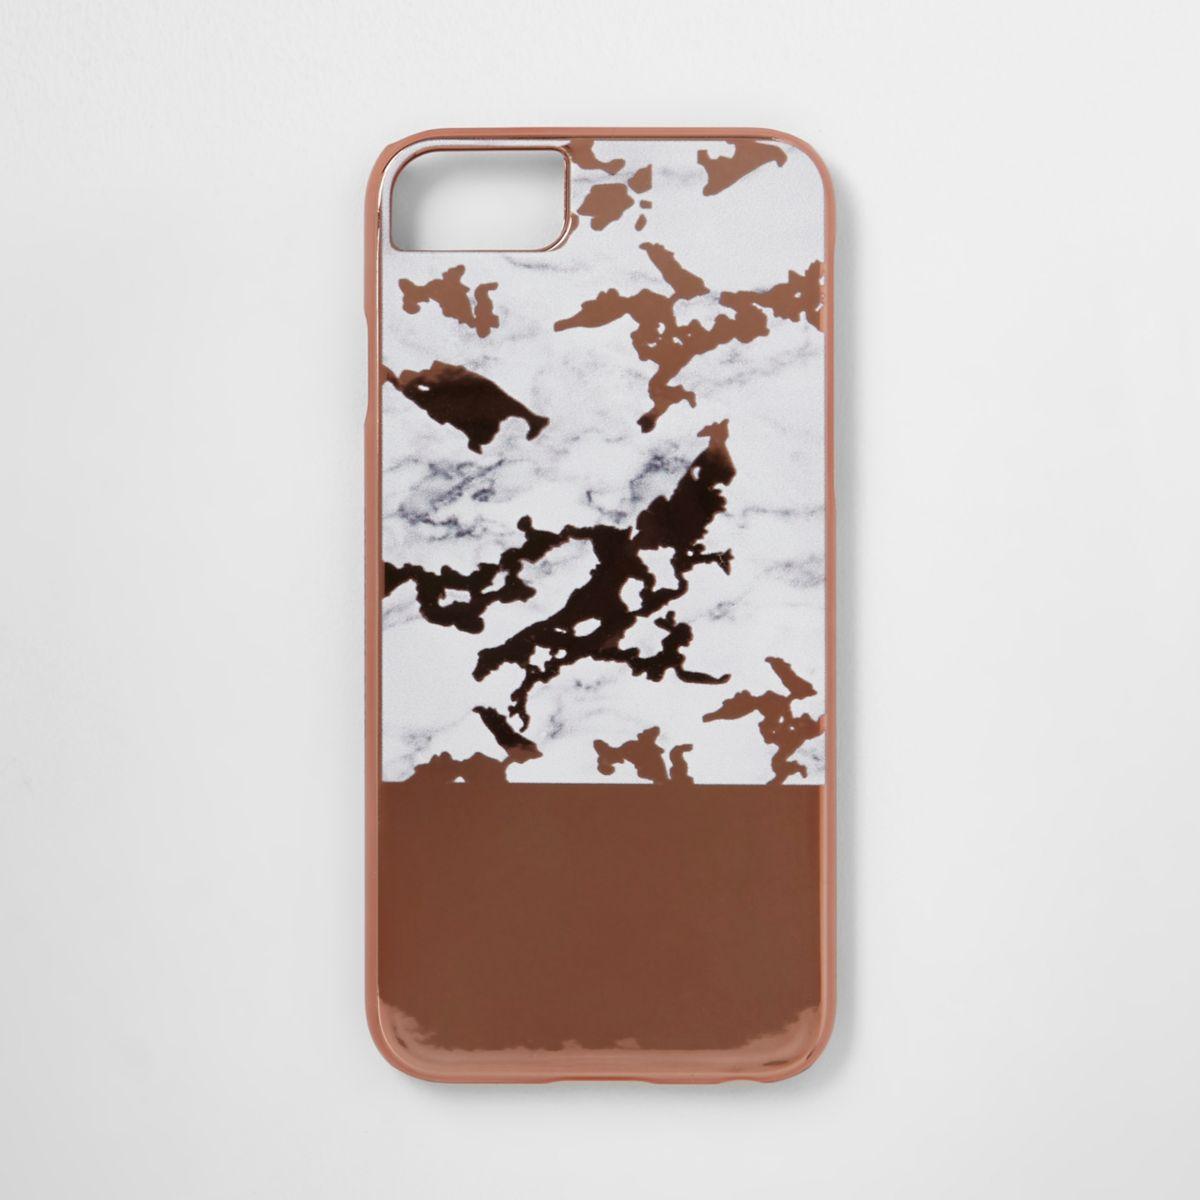 Rose gold tone marble phone case